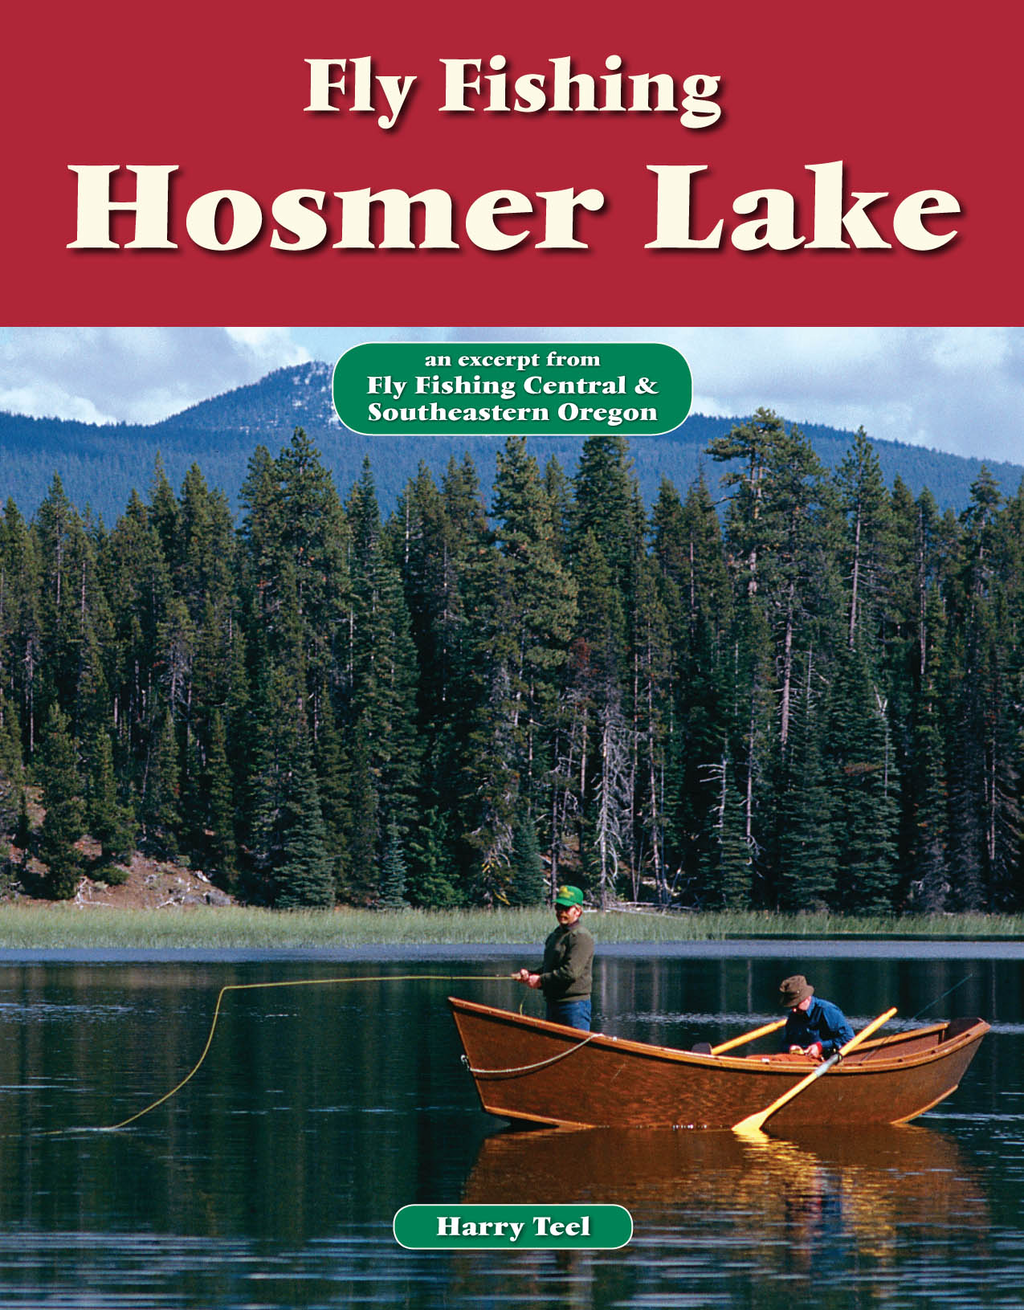 Fly Fishing Hosmer Lake